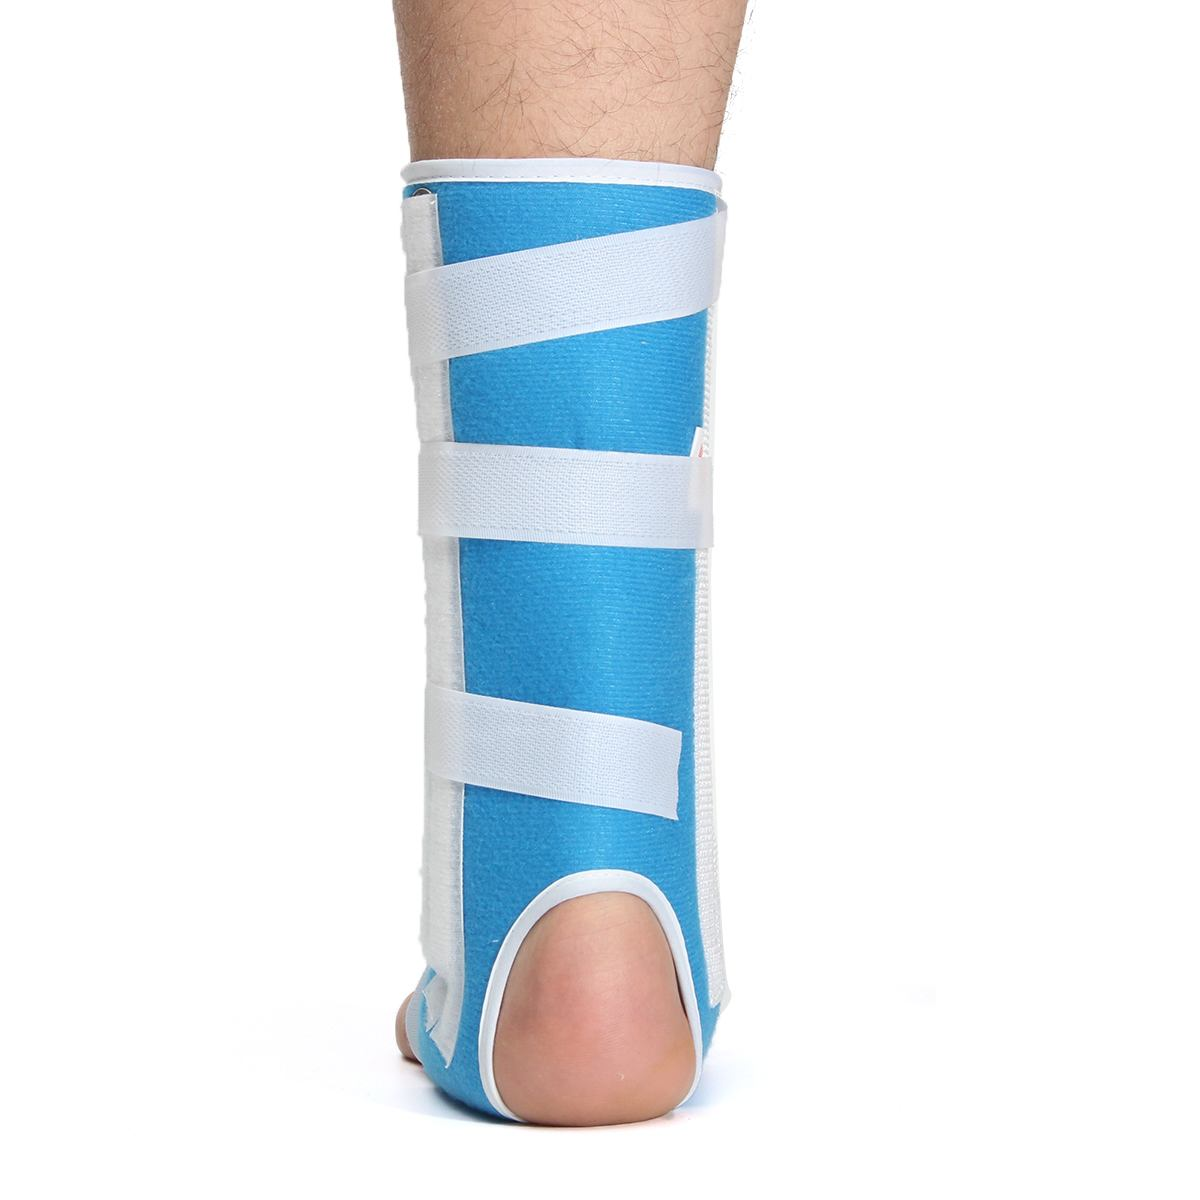 Ankle Brace Support Foot Drop Splint Guard Sprain Orthosis Fractures Ankle Braces For First Aid Plantar Fasciitis Heel Pain 4